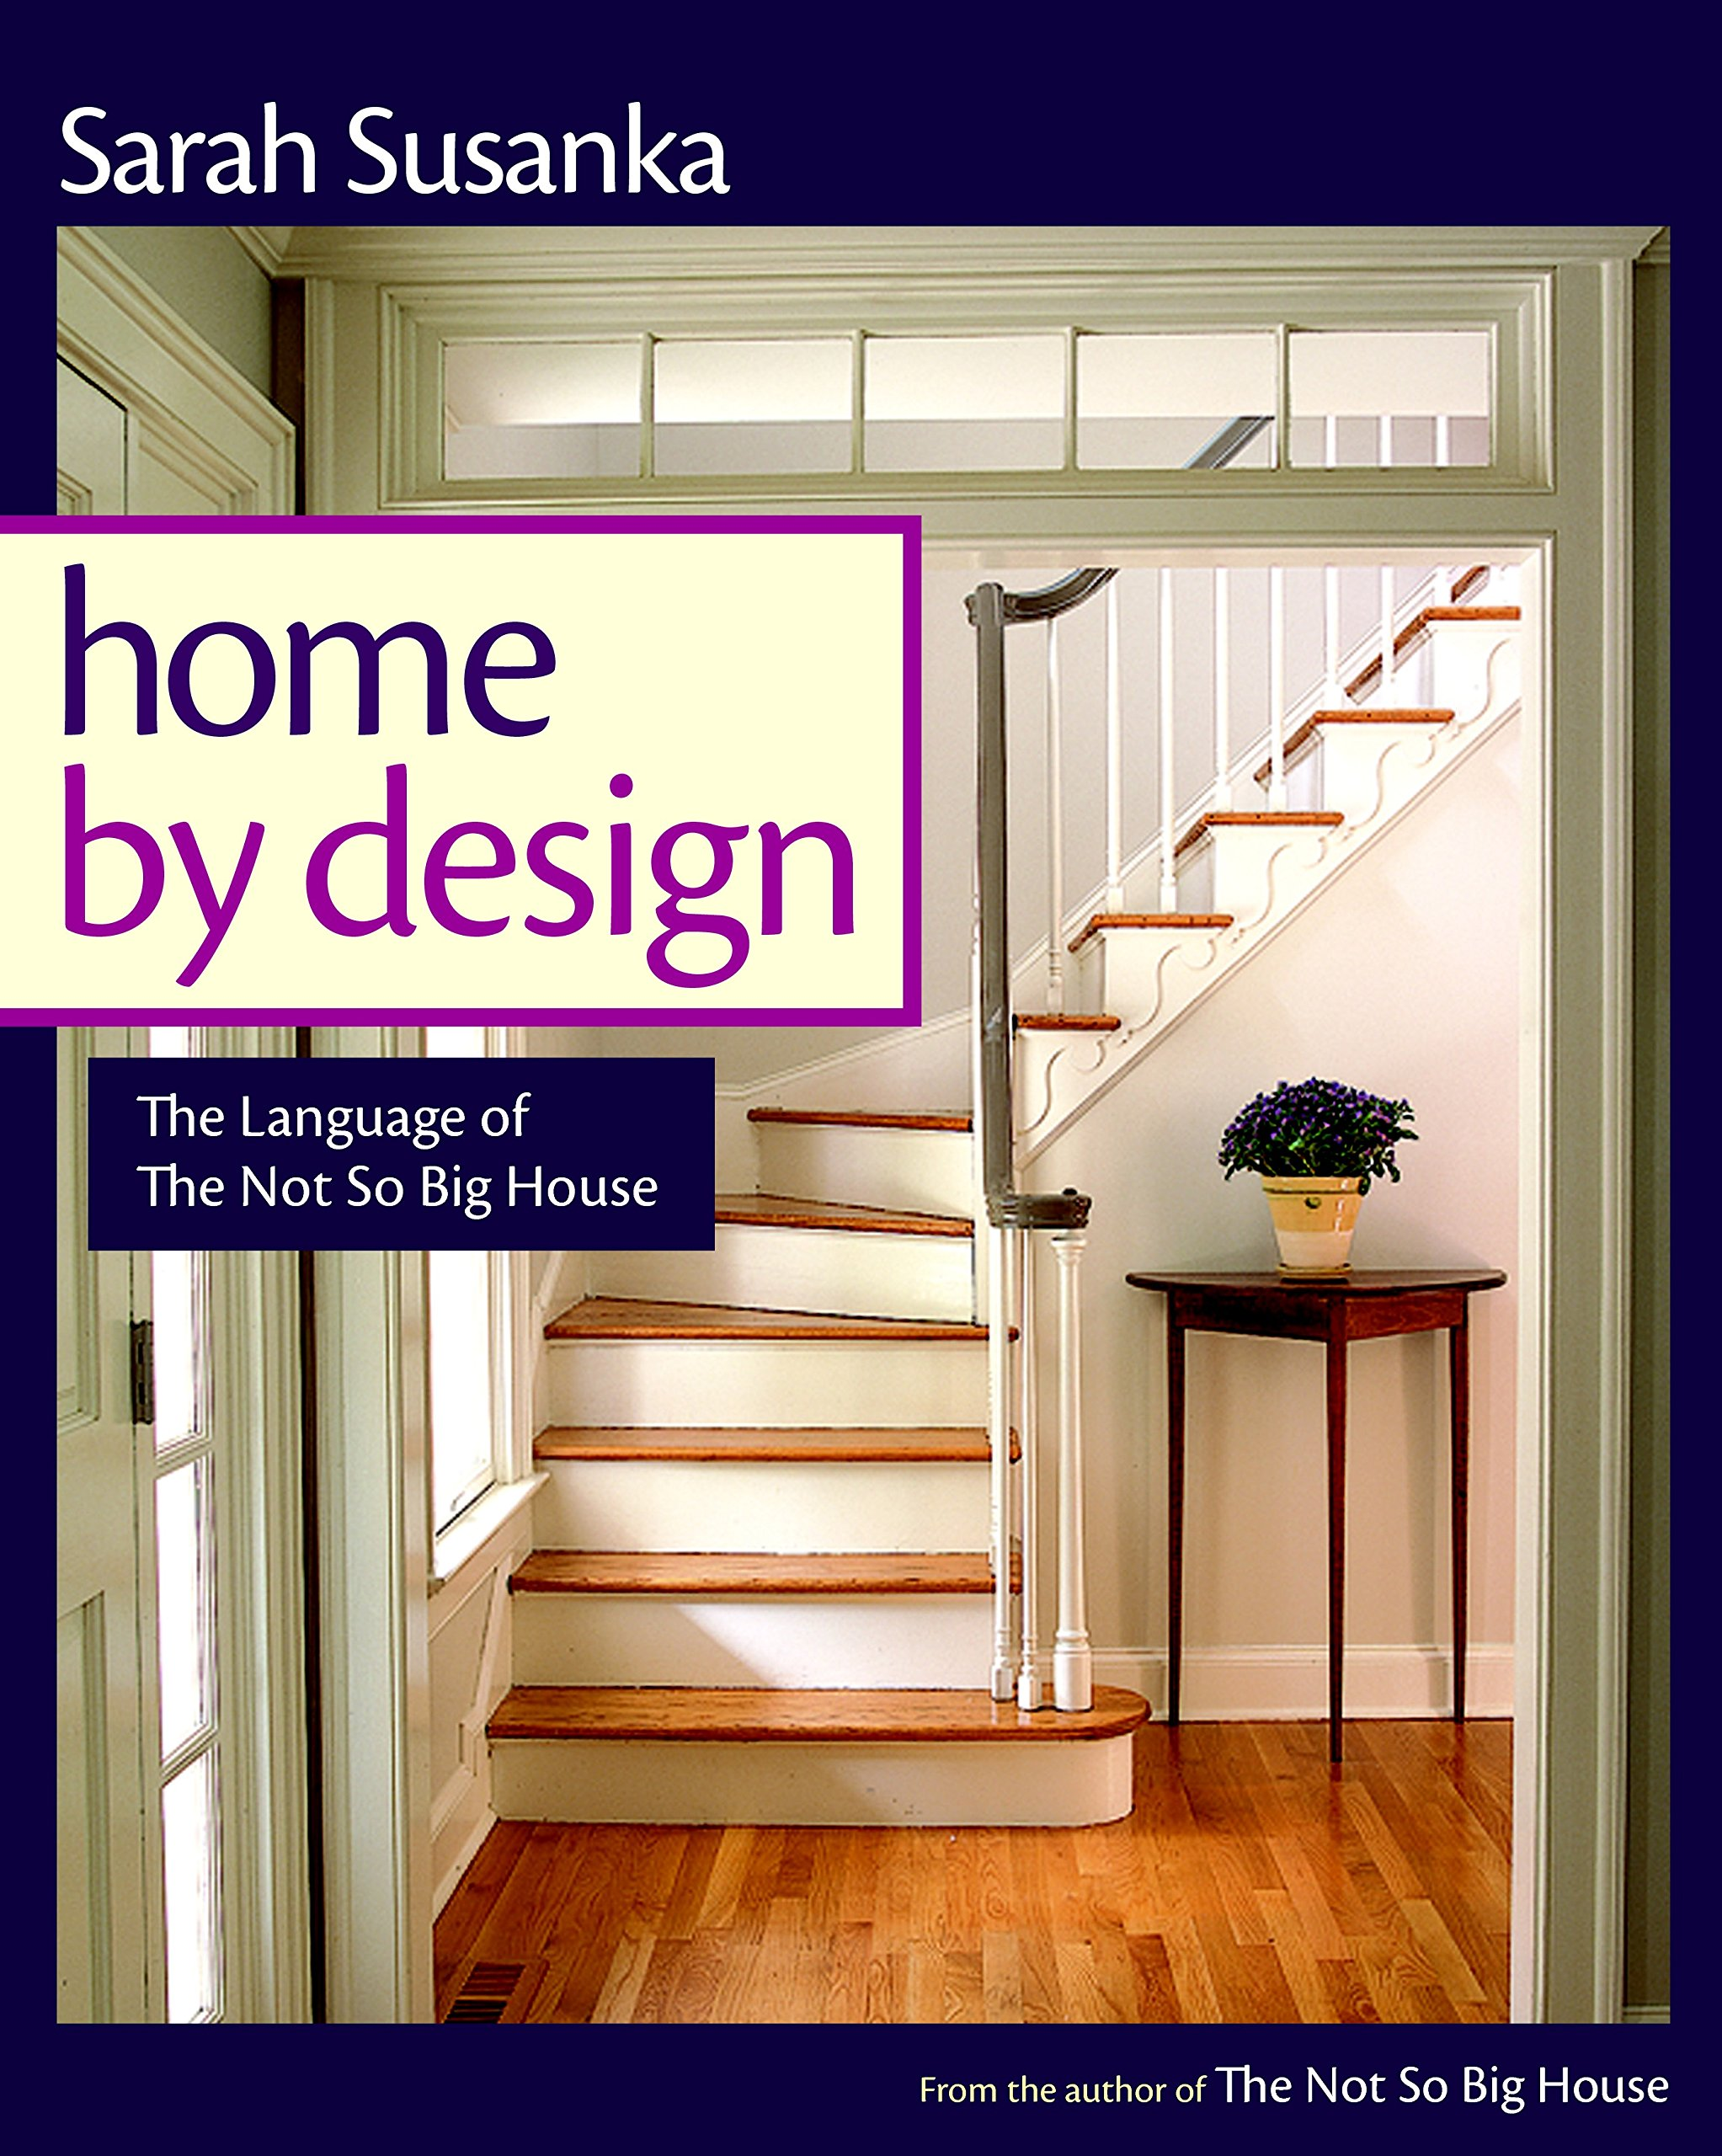 Exceptionnel Home By Design: The Language Of The Not So Big House: Sarah Susanka, Grey  Crawford: 9781561587919: Amazon.com: Books